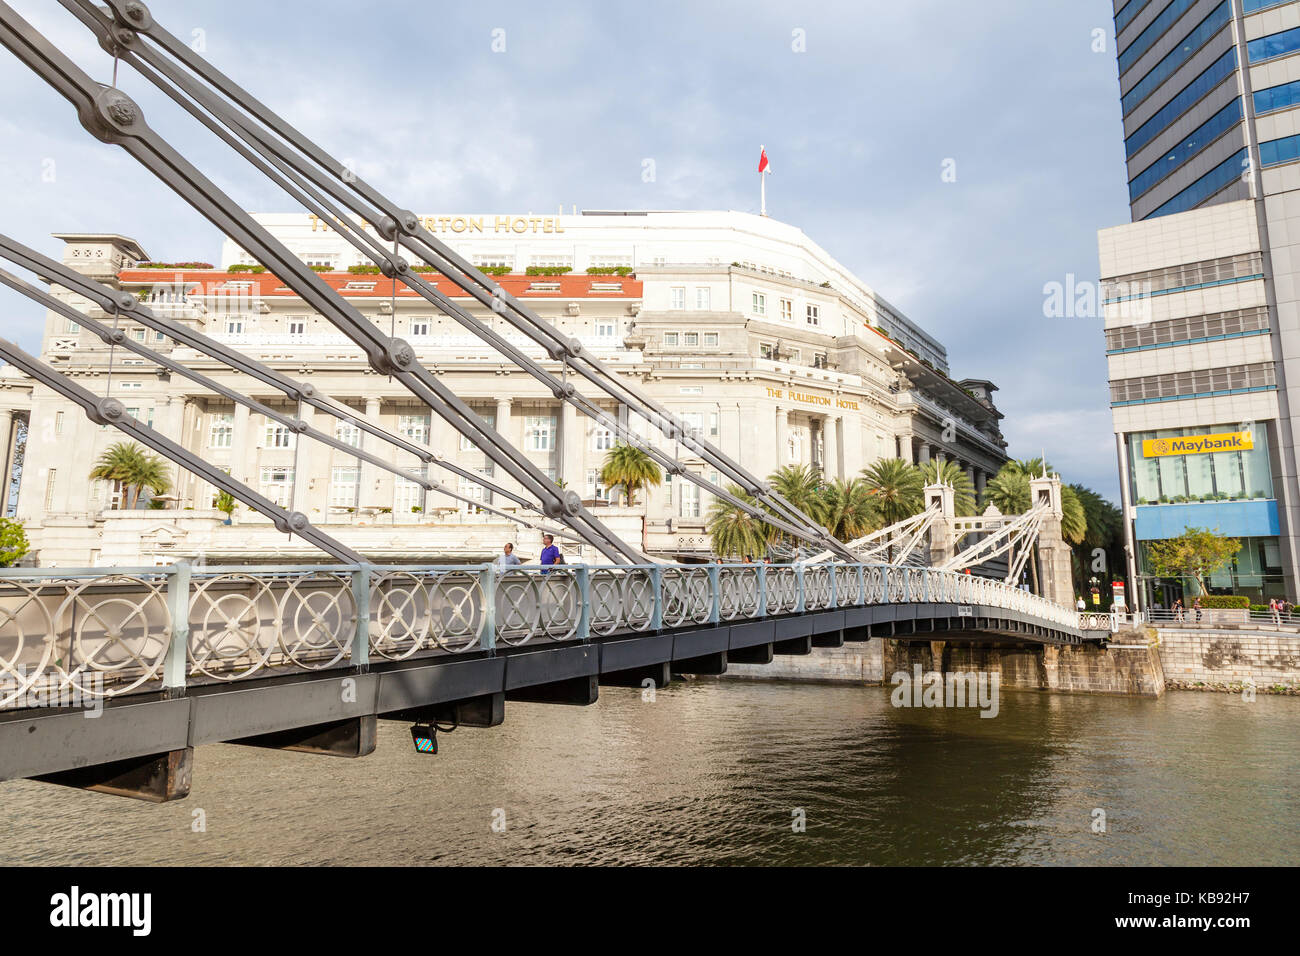 SINGAPORE - SEPTEMBER 6, 2017: Cavenagh Bridge over the Singapore River is one of the oldest bridges and the only - Stock Image